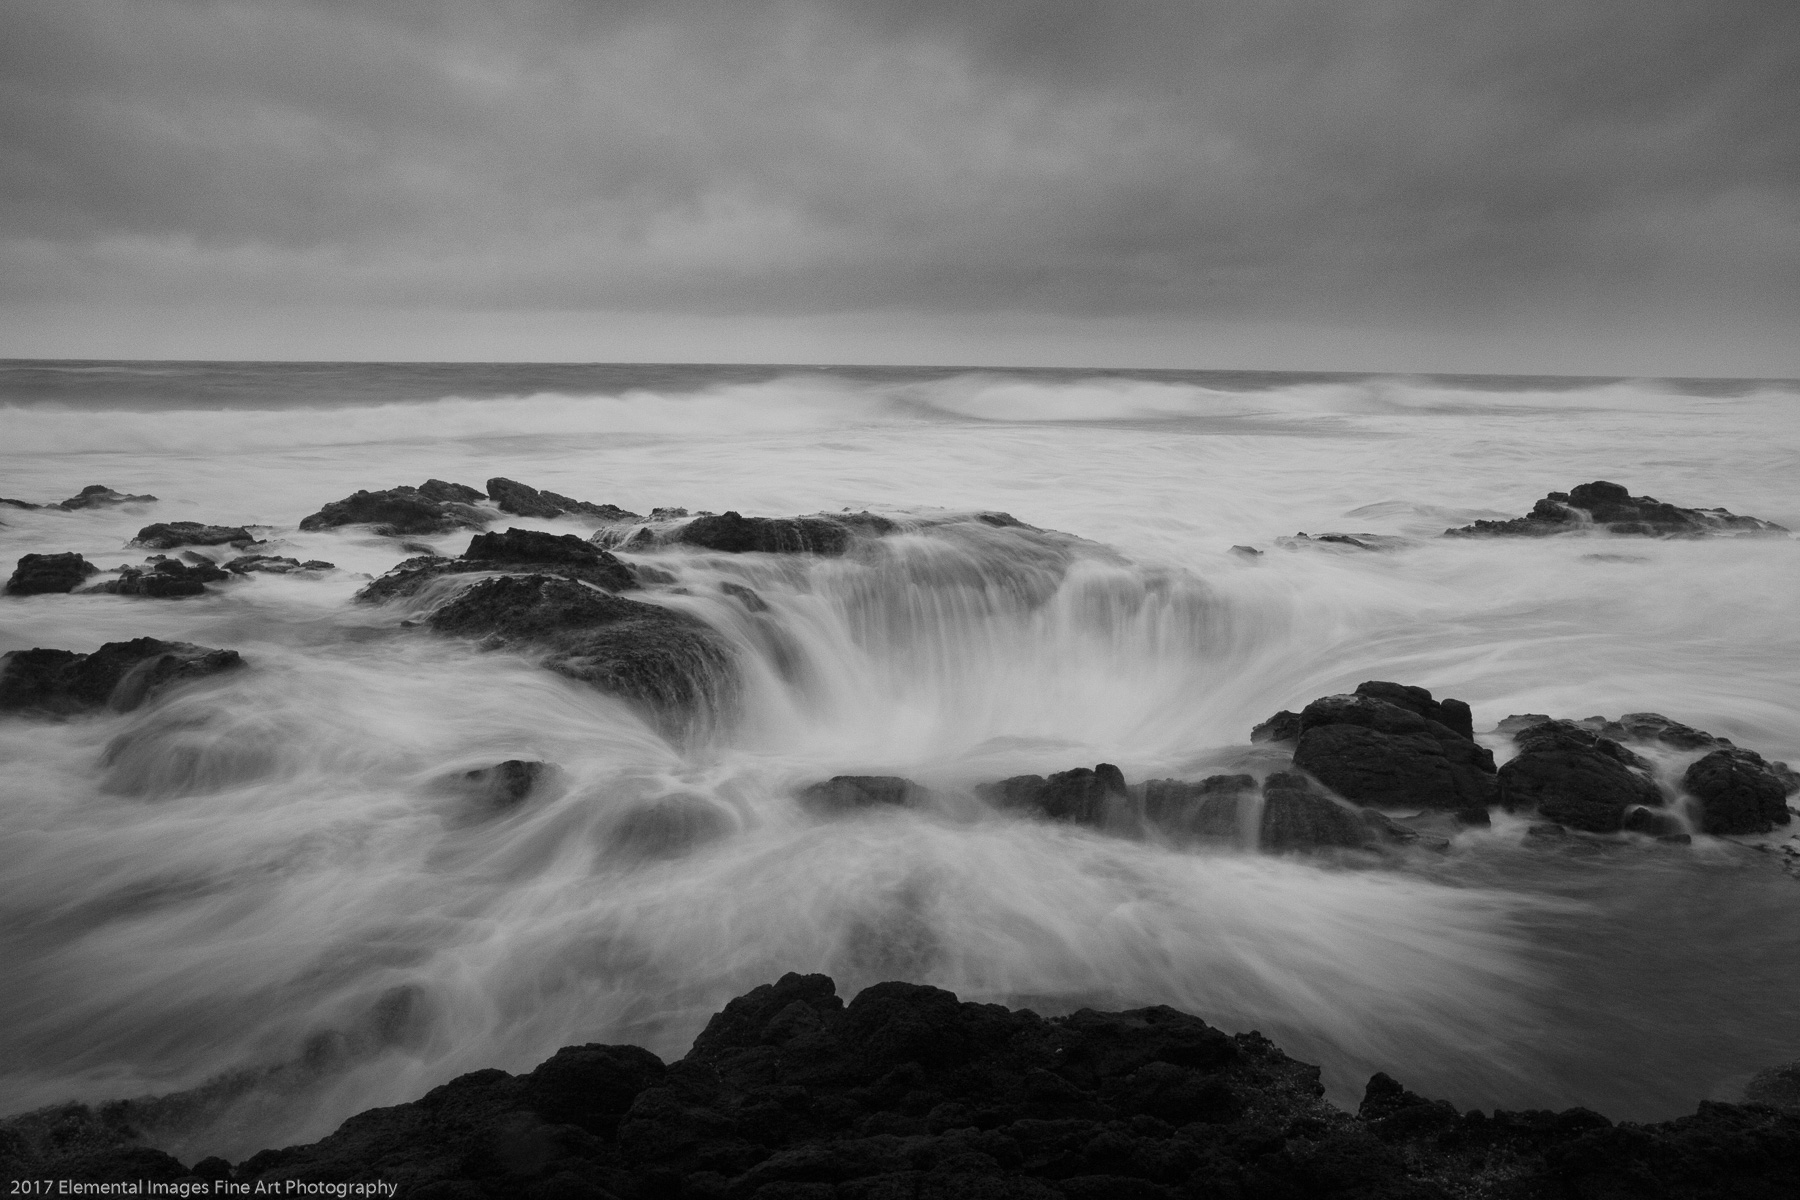 Thor's Well | Cape Perpetua | OR | USA - © 2017 Elemental Images Fine Art Photography - All Rights Reserved Worldwide